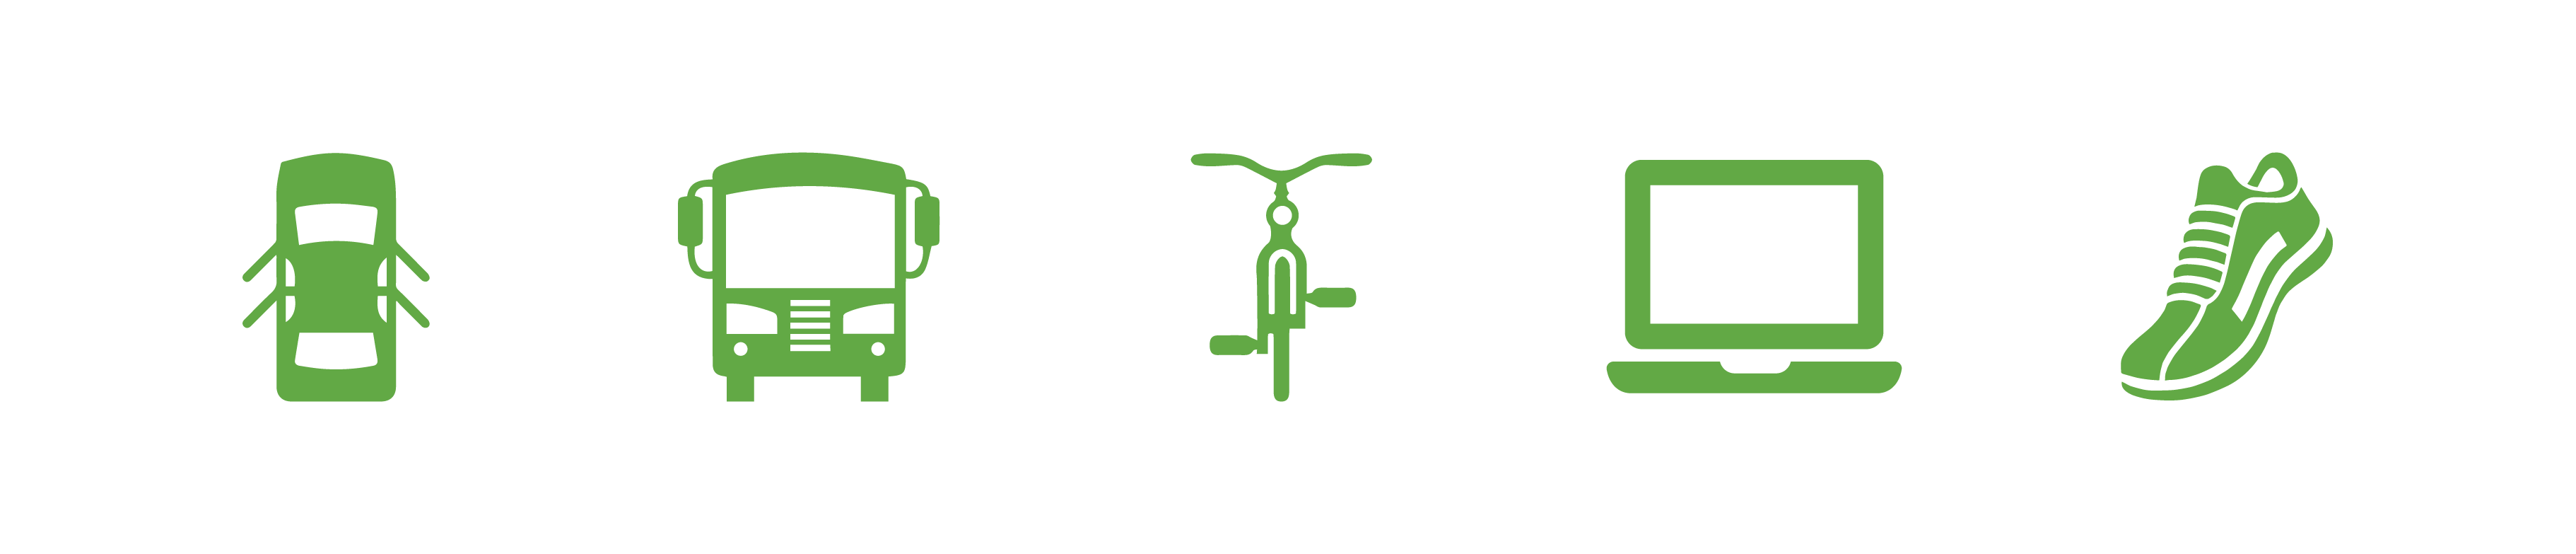 Smart Commute Icons